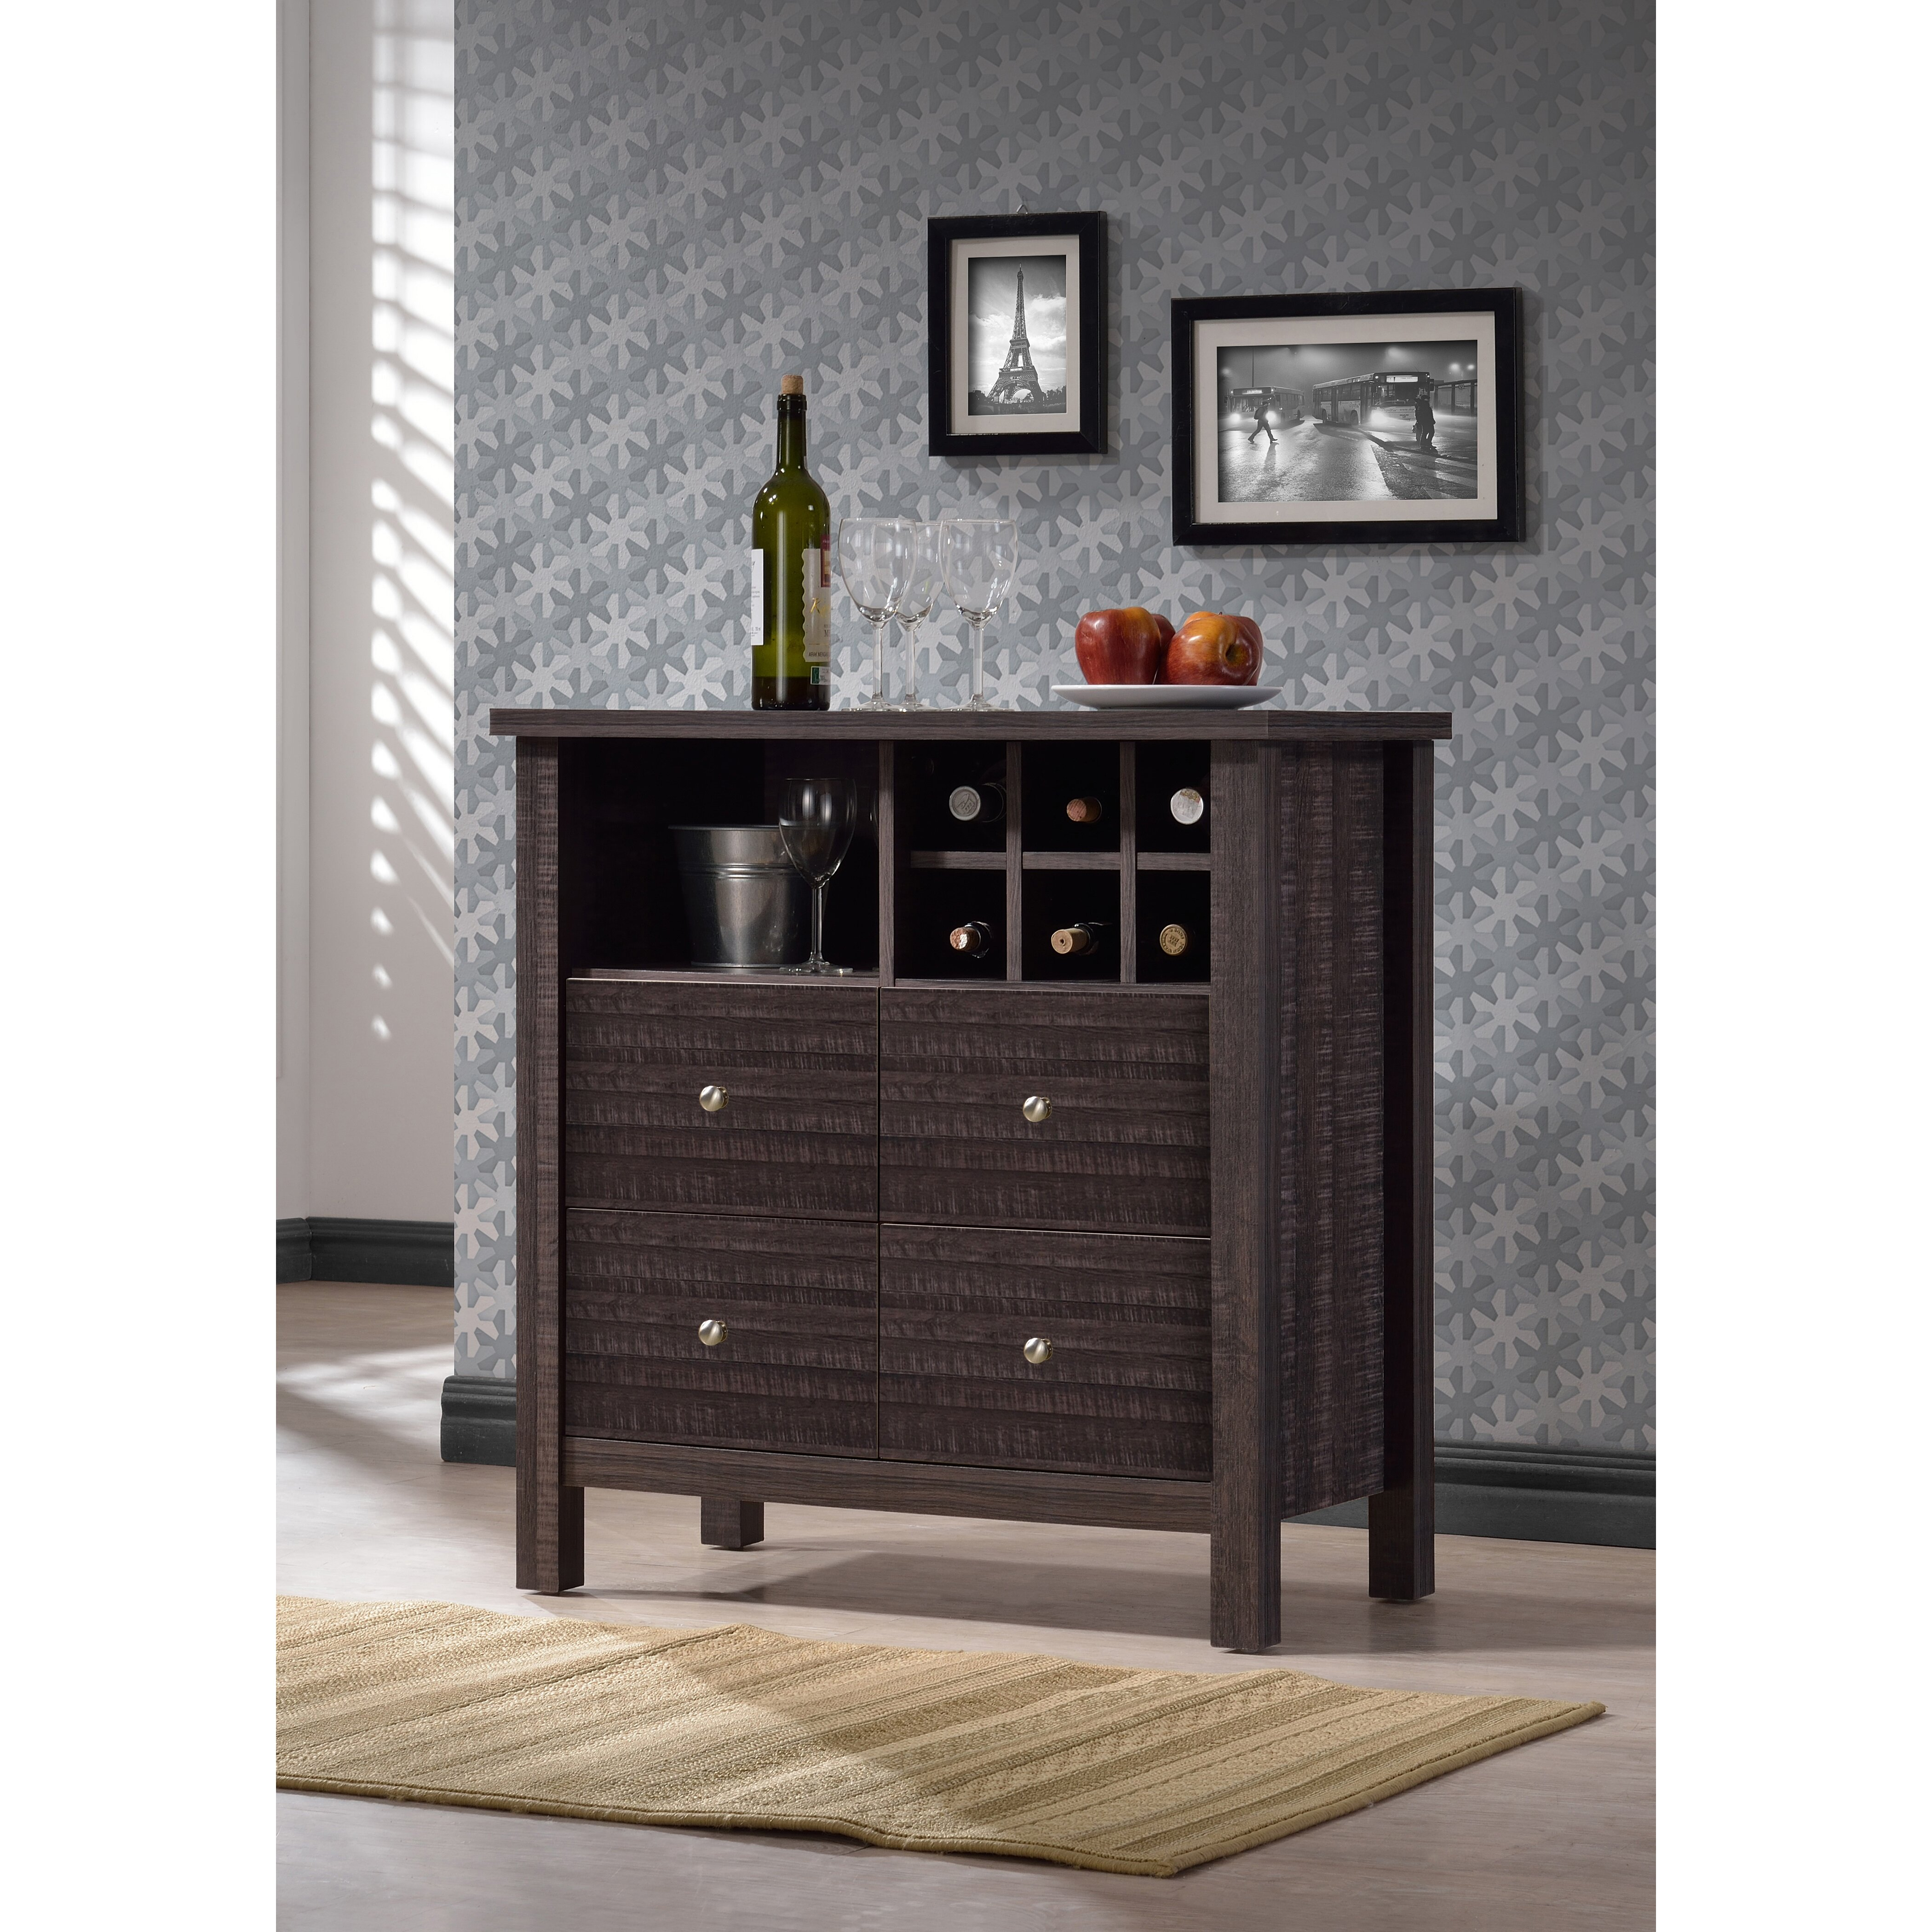 Very Impressive portraiture of Furniture Bar Furniture Cabinets For Bars & Bar Sets Wholesale  with #7E664D color and 4200x4200 pixels